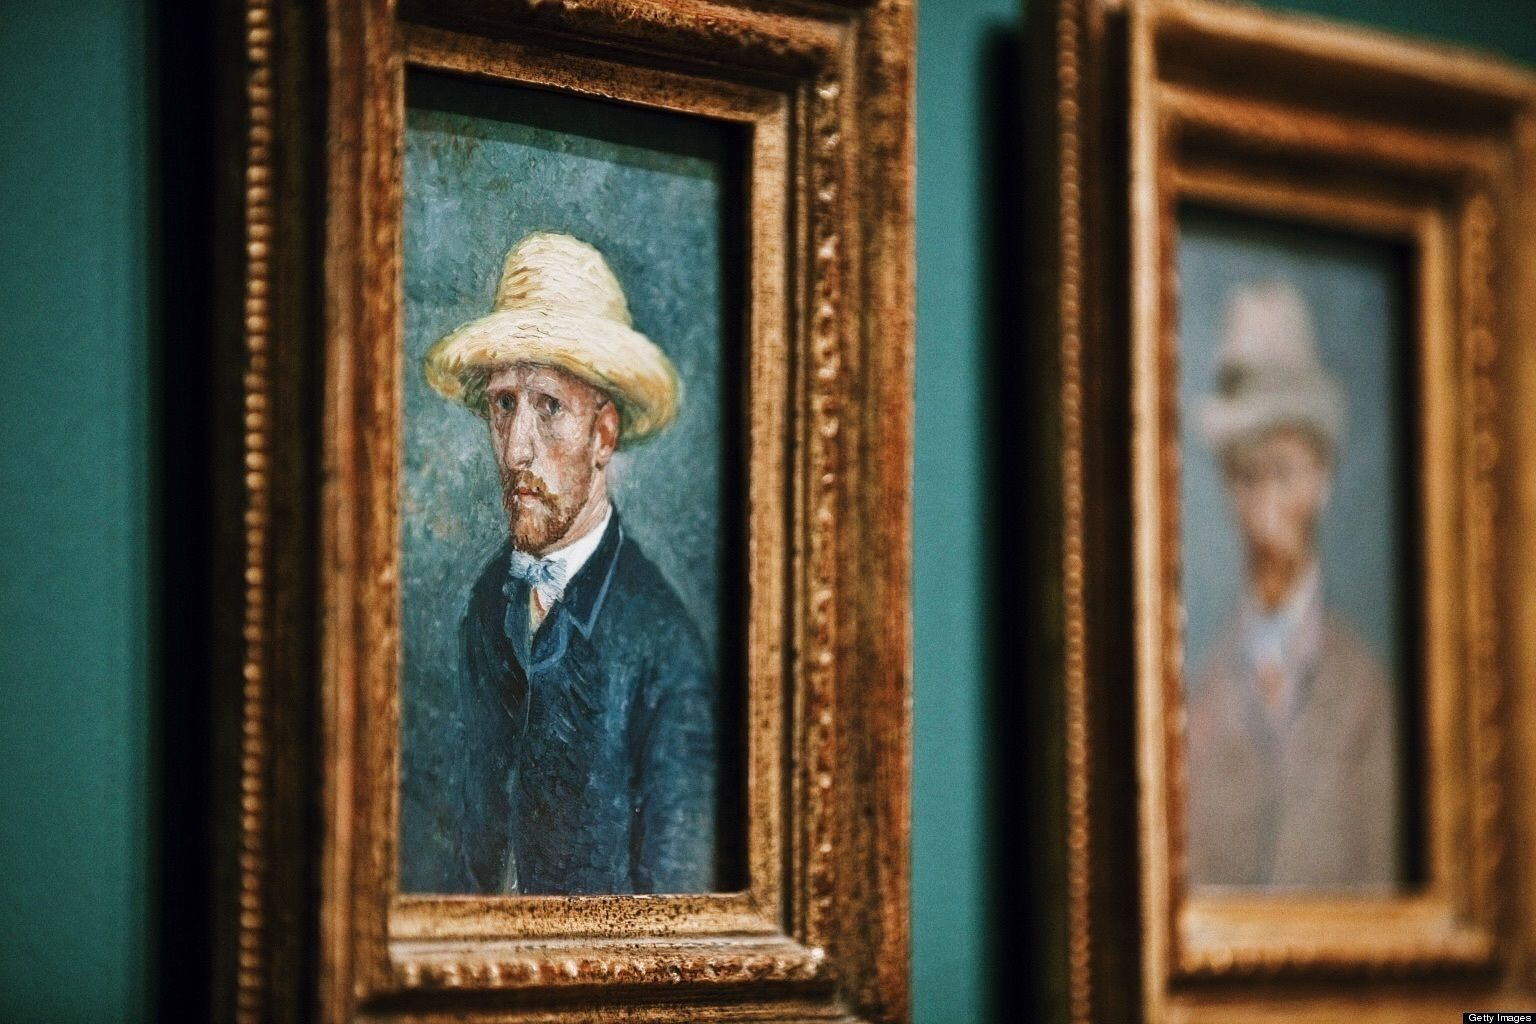 Skip-the-Line Van Gogh Museum Semi-Private Guided Tour